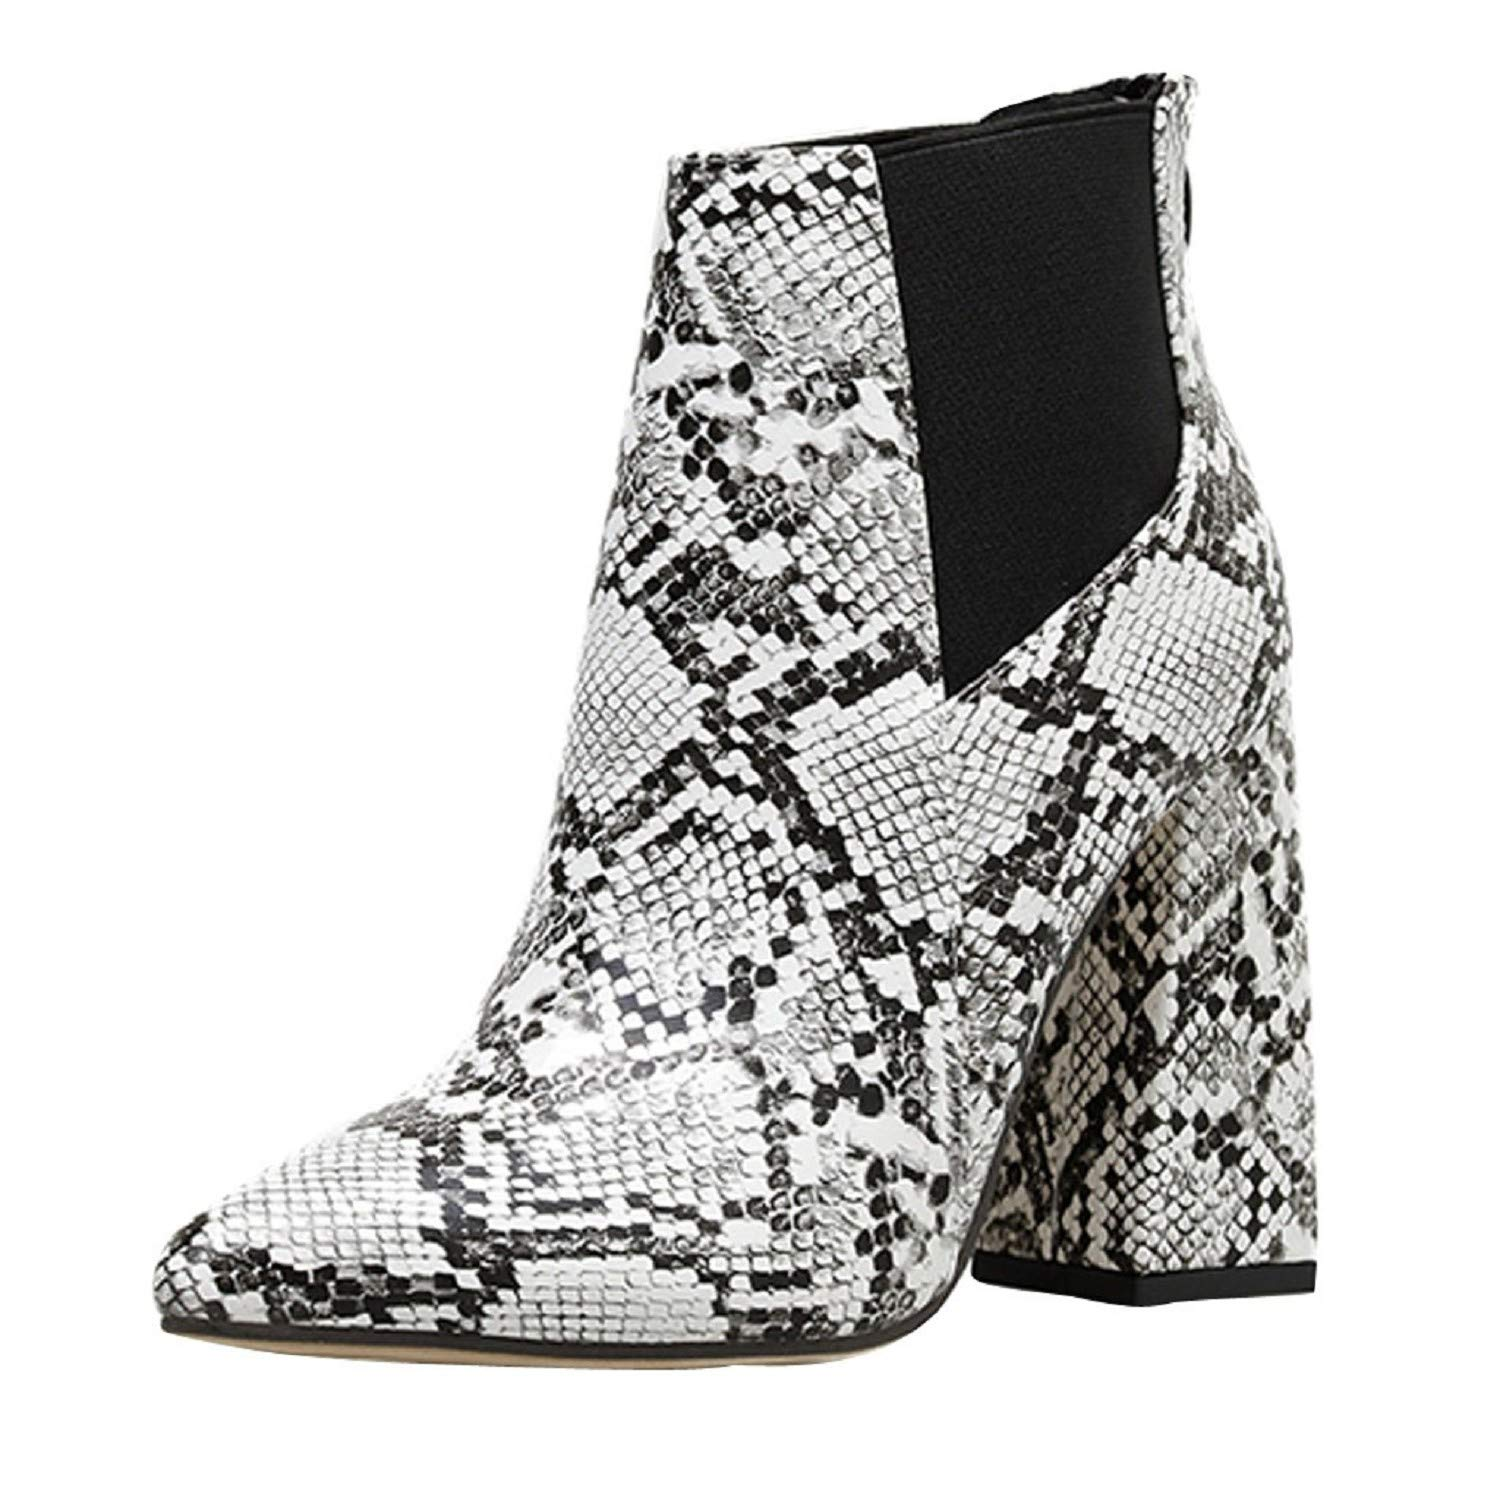 Tsmile Women Block High Heel Boots Snake Skin Elastic Band Shoes Printed Lightweight Dressy Chelsea Ankle Booties White by Tsmile Winter